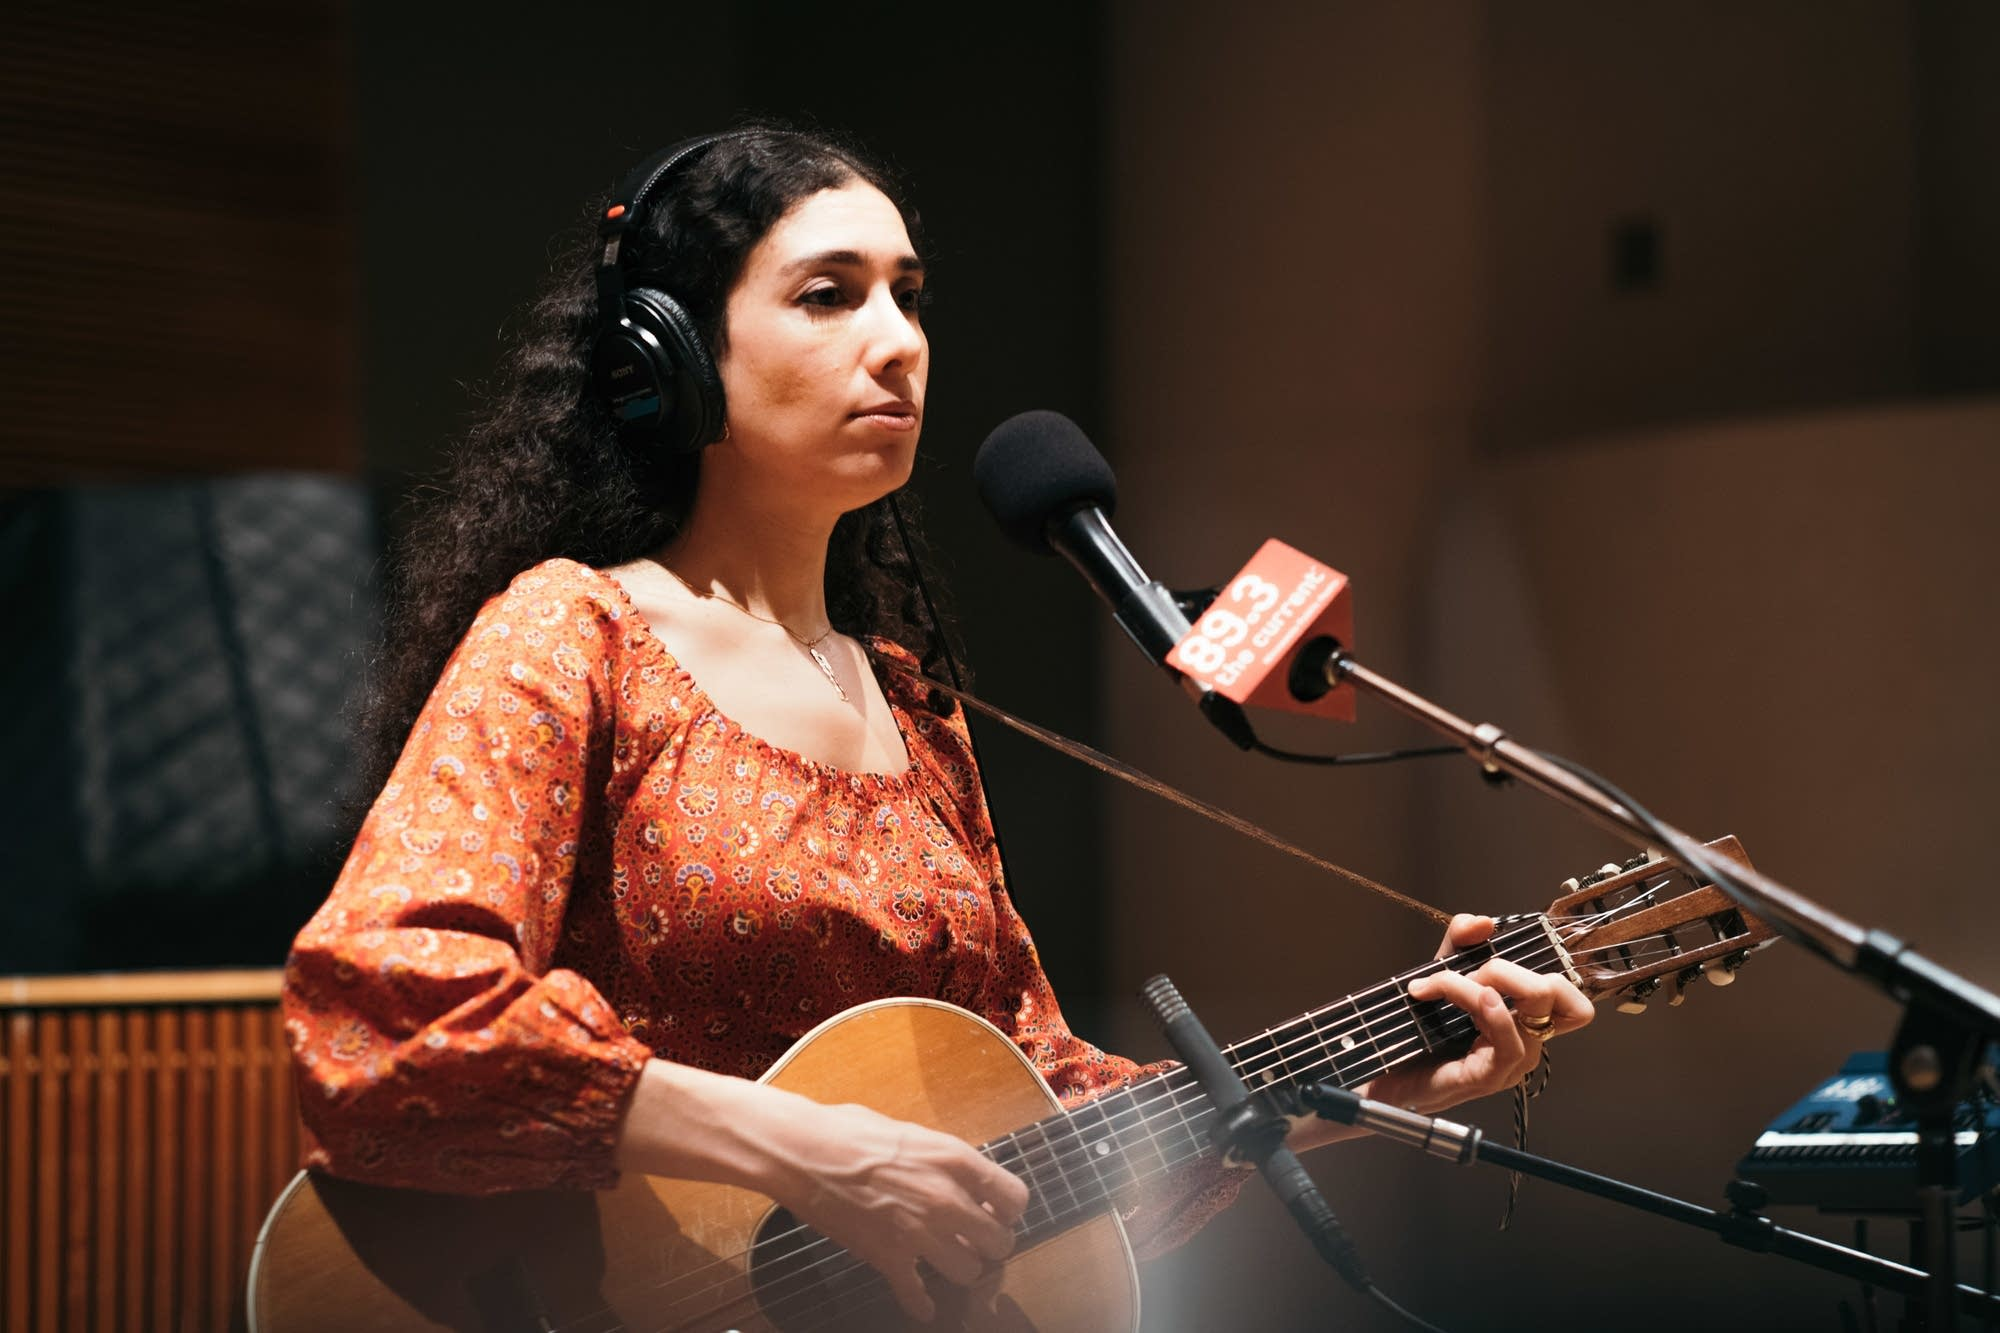 Bedouine performs in The Current studio